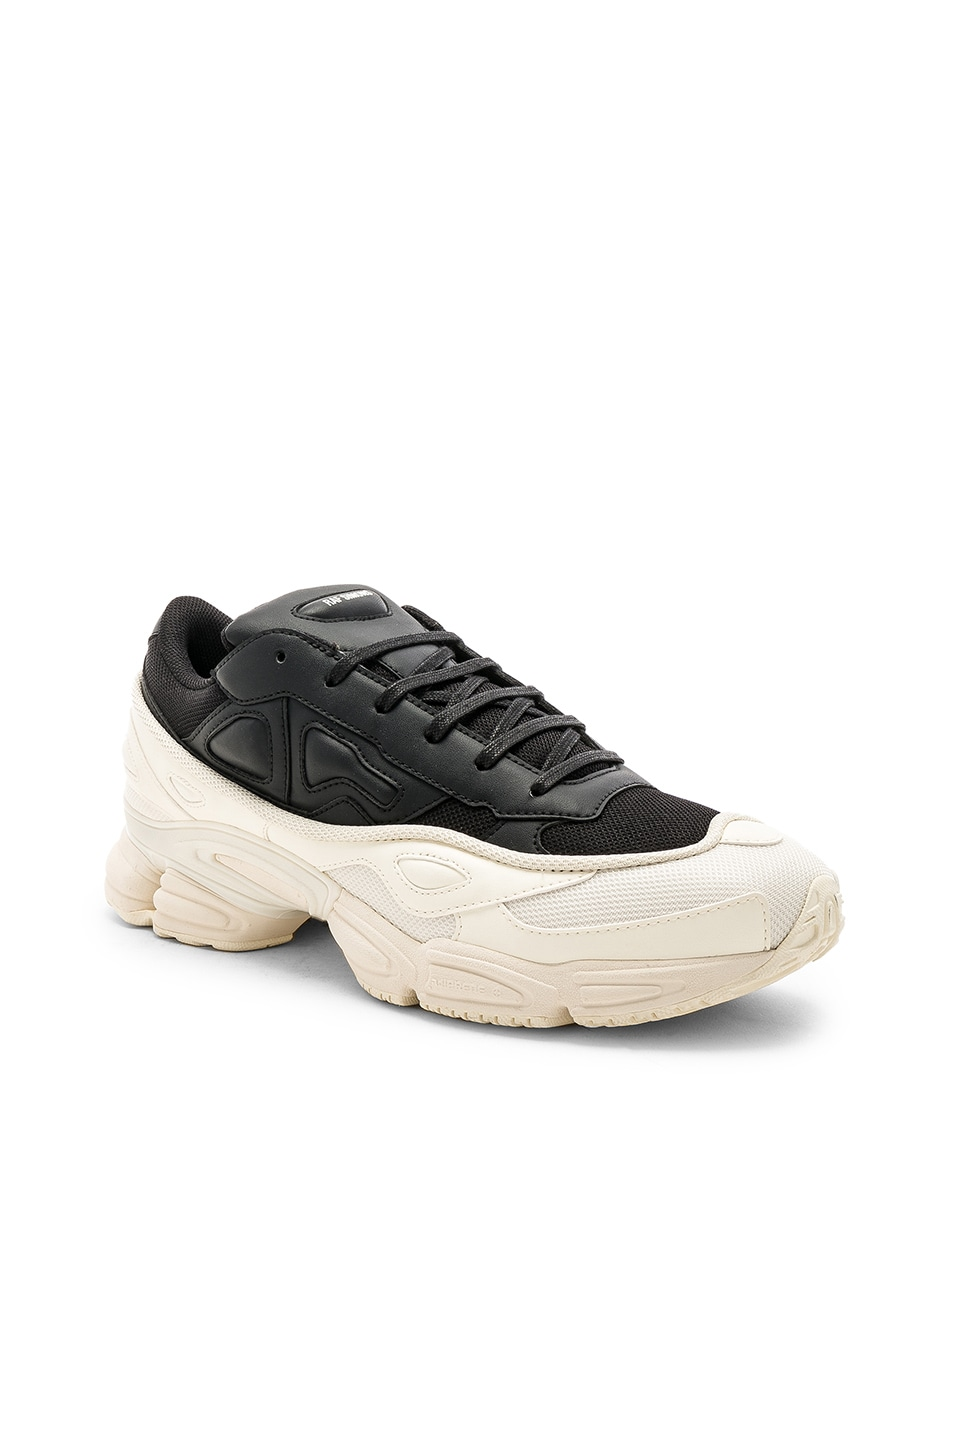 745996e80af2af Image 1 of adidas by Raf Simons Ozweego in Cream White   Core Black   Core